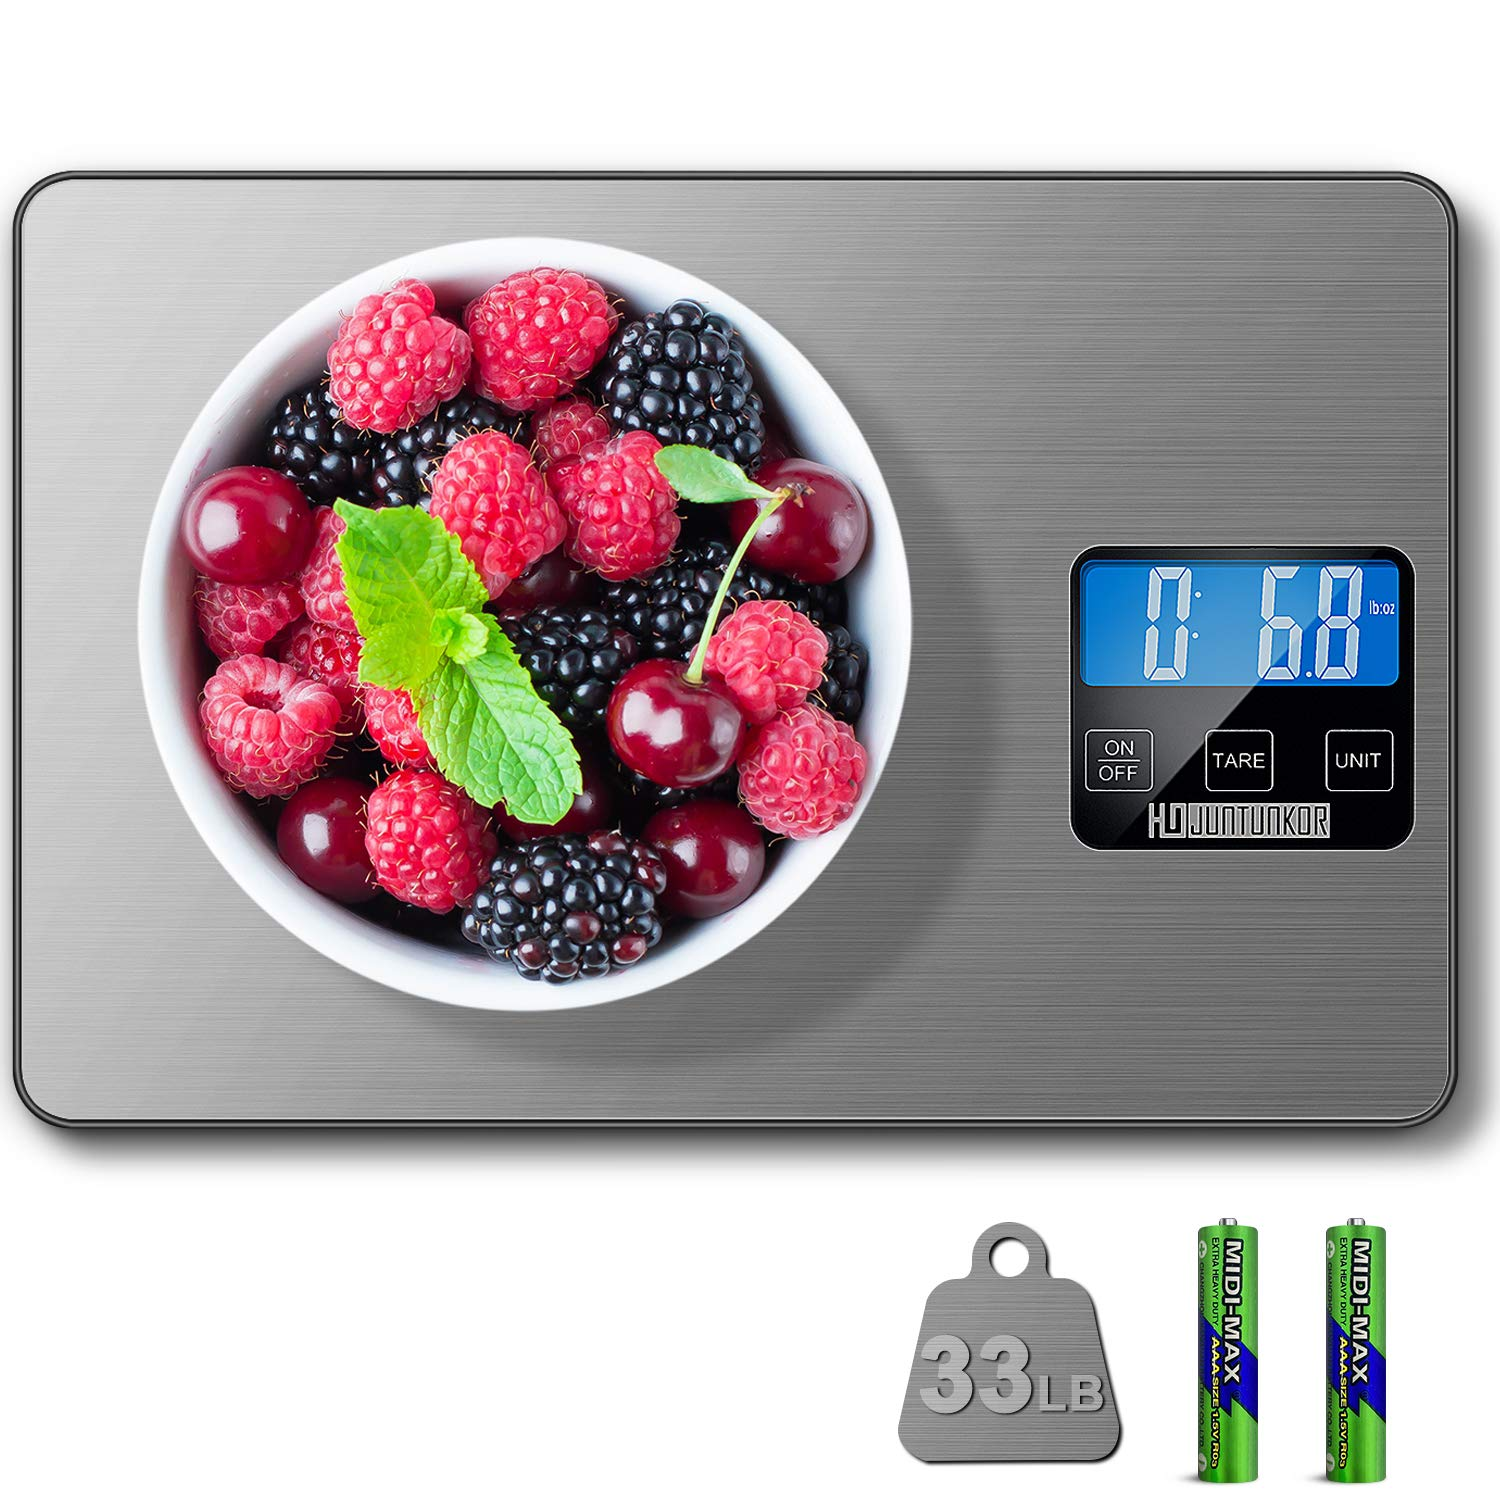 HDJUNTUNKOR Food Scale, 33lb Digital Kitchen Scale Weight Grams and Ounces for Cooking Baking, 1g/0.1oz Precise Graduation, 5 Units LCD Display Scale, Stainless Steel and Tempered Glass